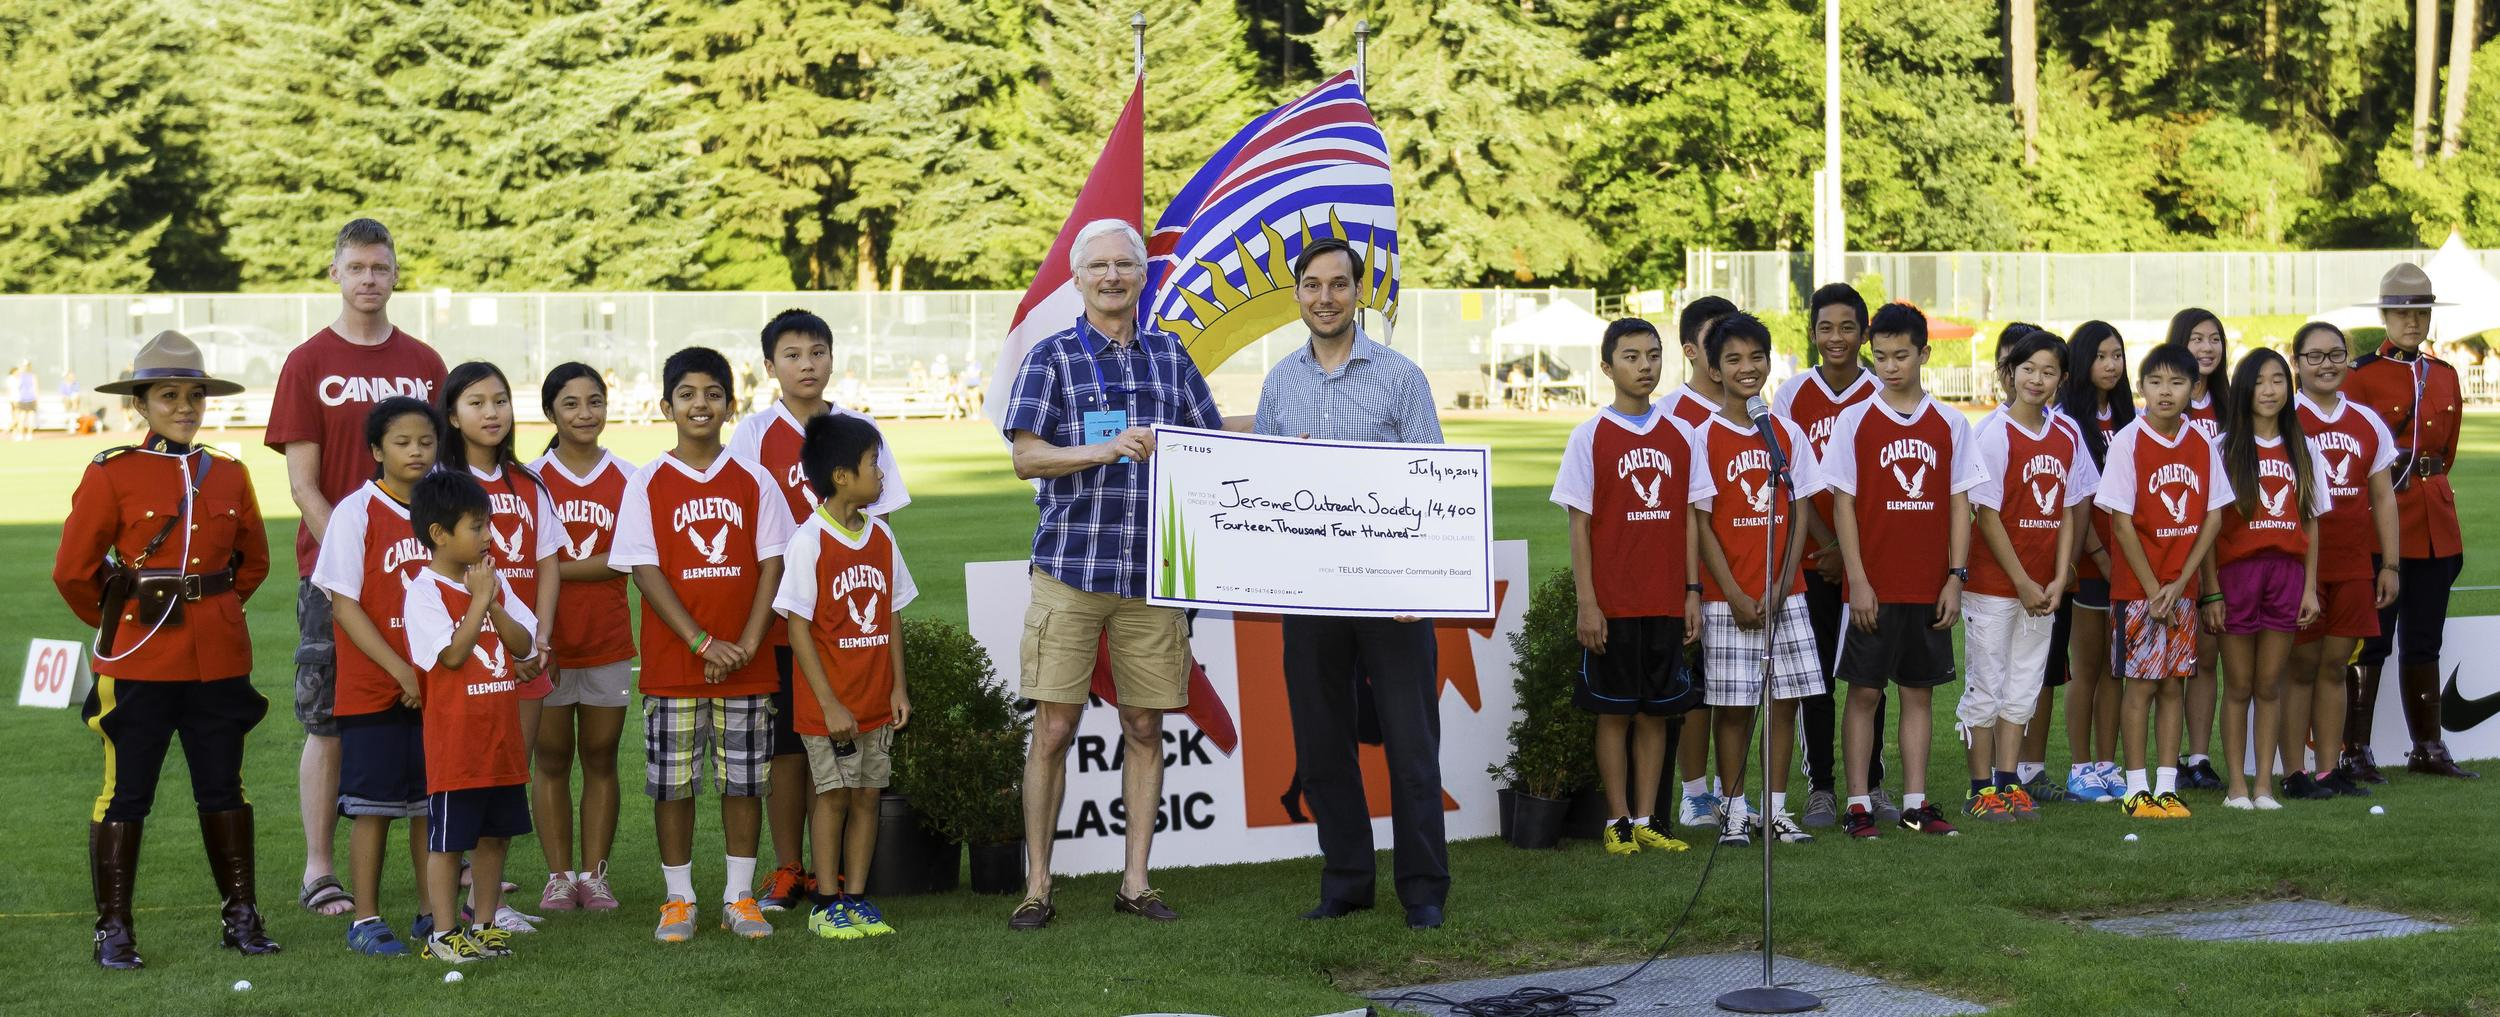 TELUS supports the Jerome Outreach Society's work with youth and sport